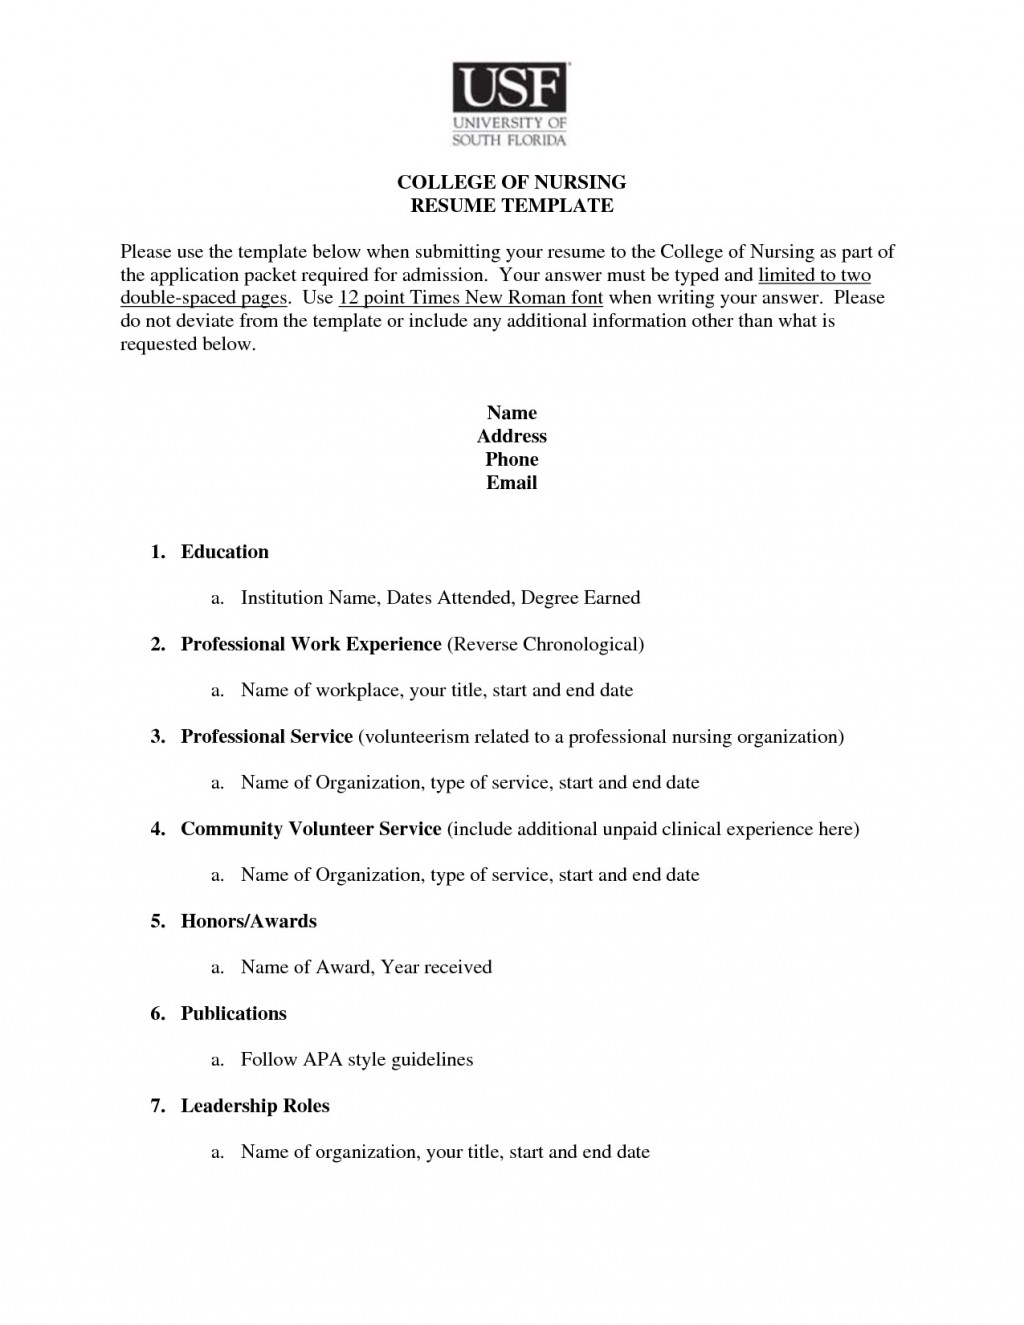 006 Awful College Admission Resume Template Design  Templates App Sample Application Microsoft WordLarge